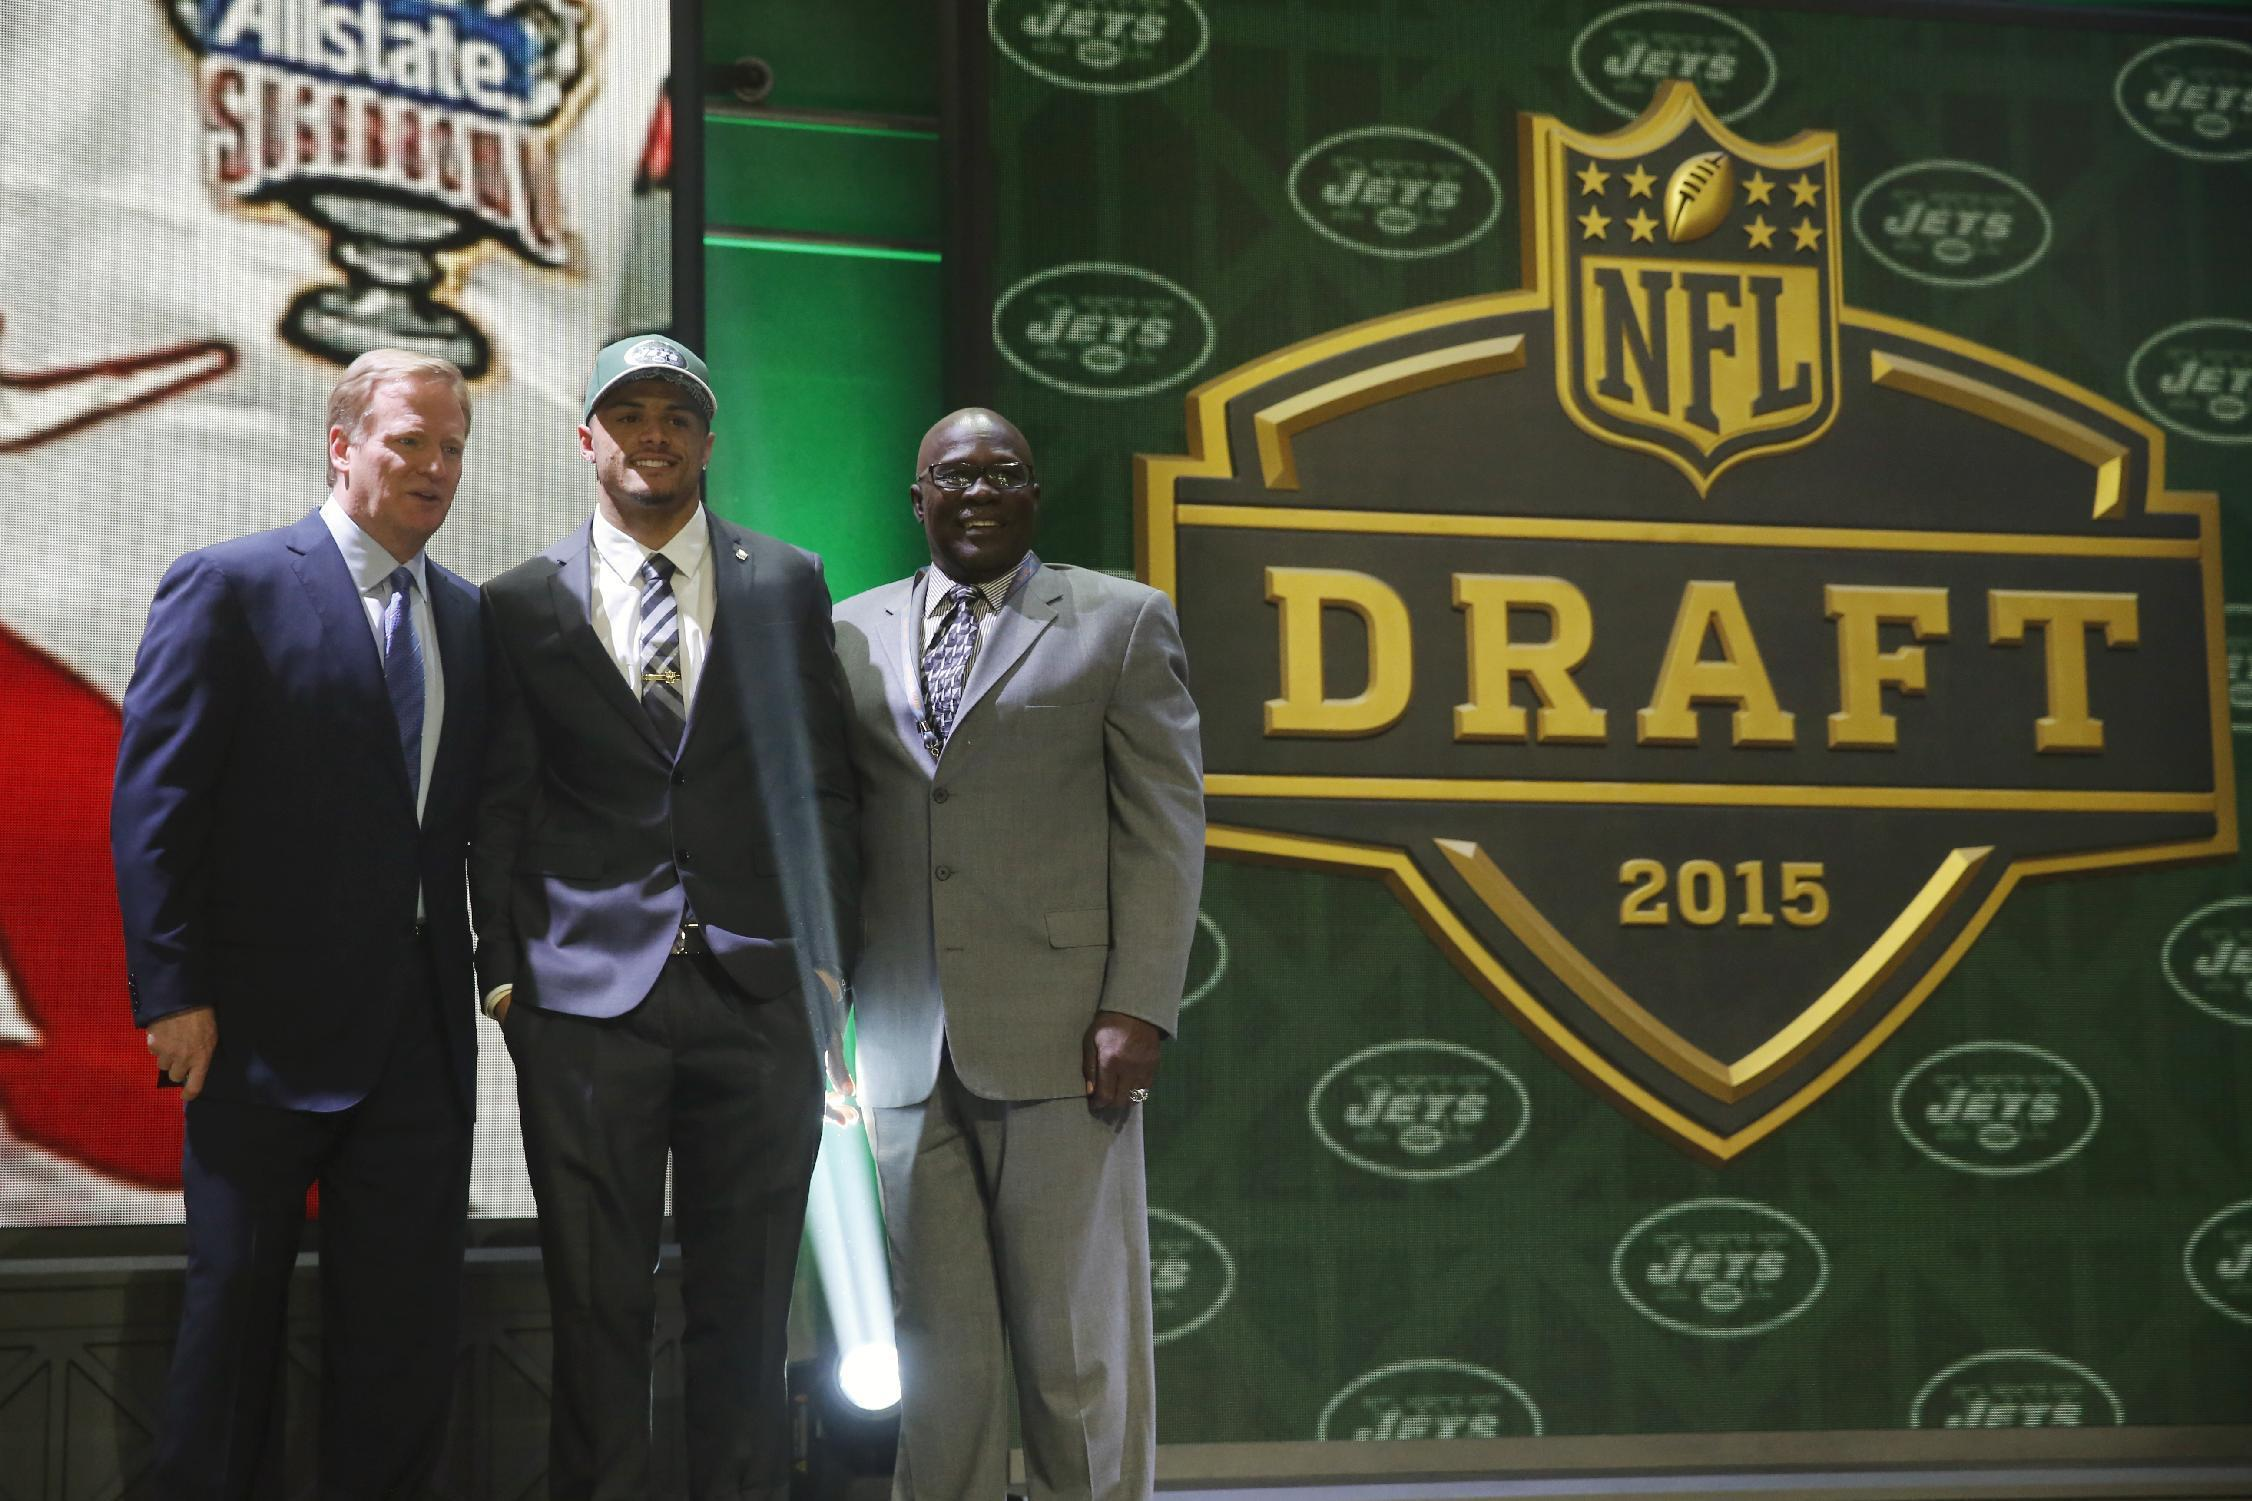 Jets take Devin Smith, Lorenzo Mauldin on draft's 2nd day